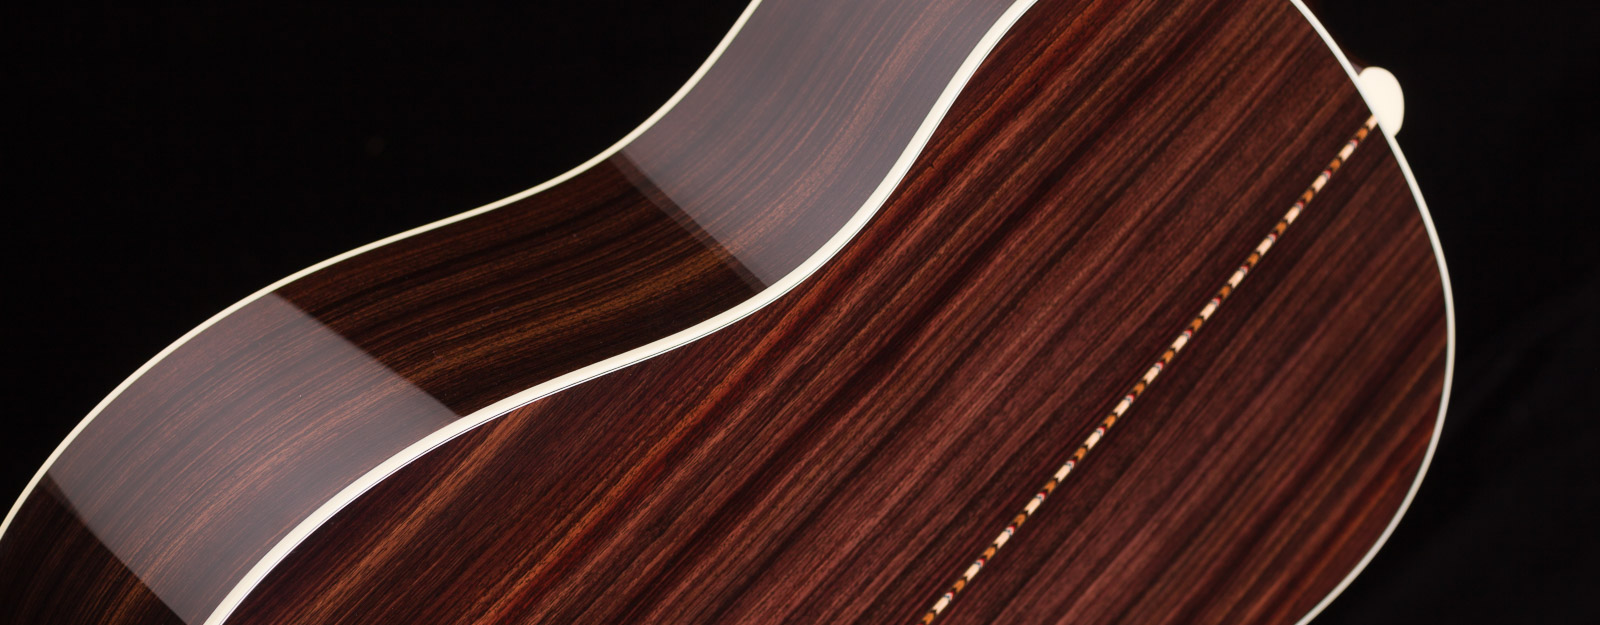 Collings Acoustic Guitar in East Indian Rosewood